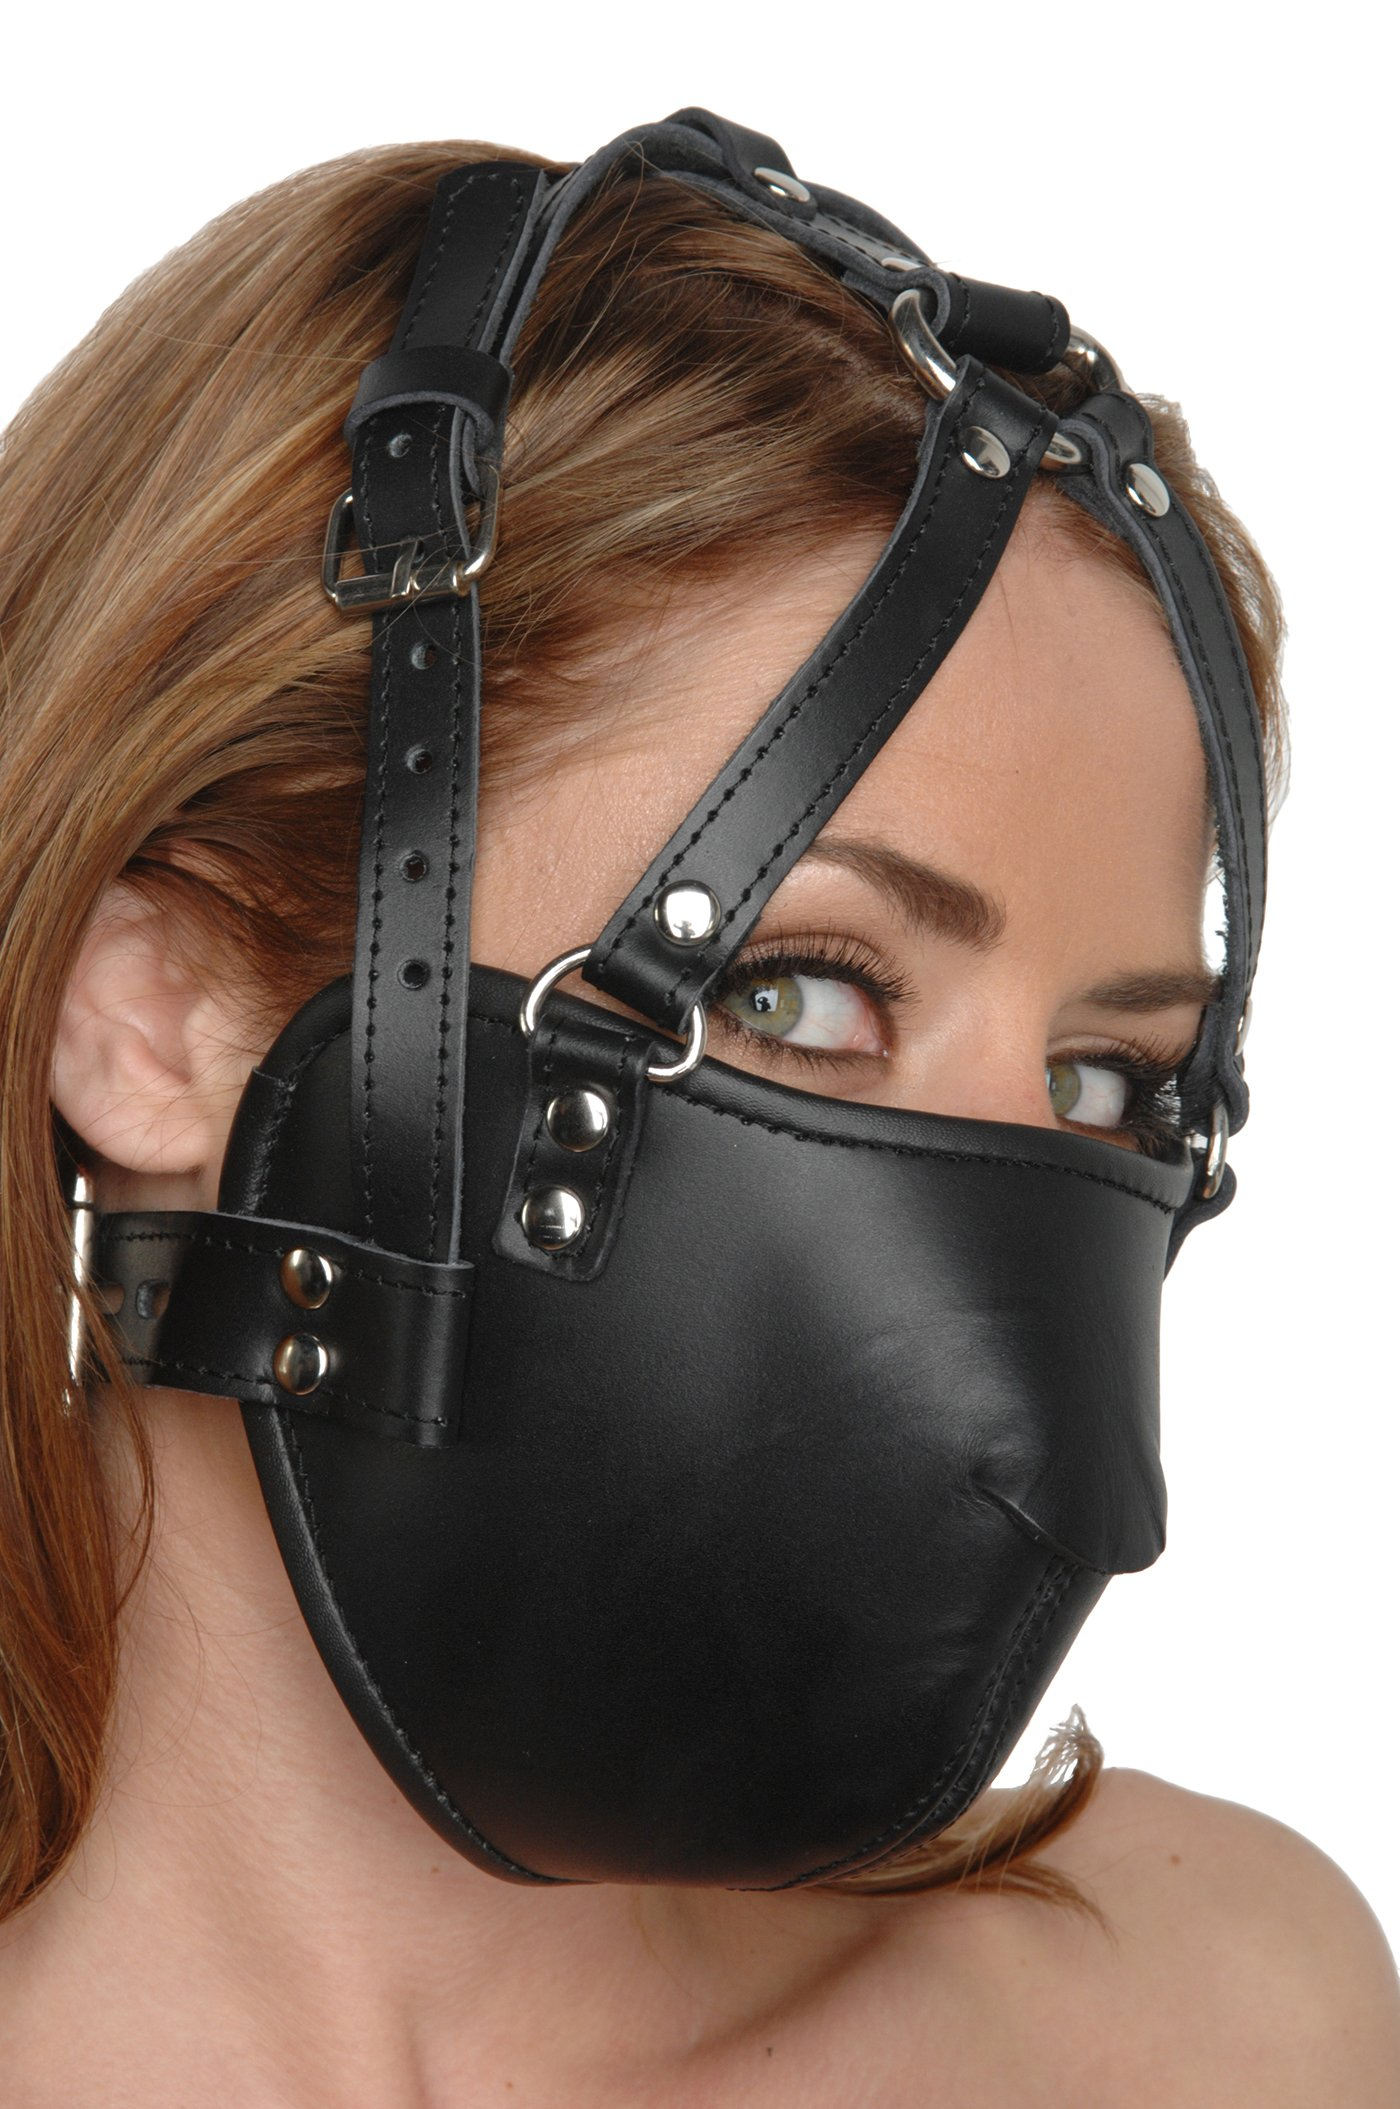 Amazoncom Strict Leather Leather Ball Gag Harness -8834